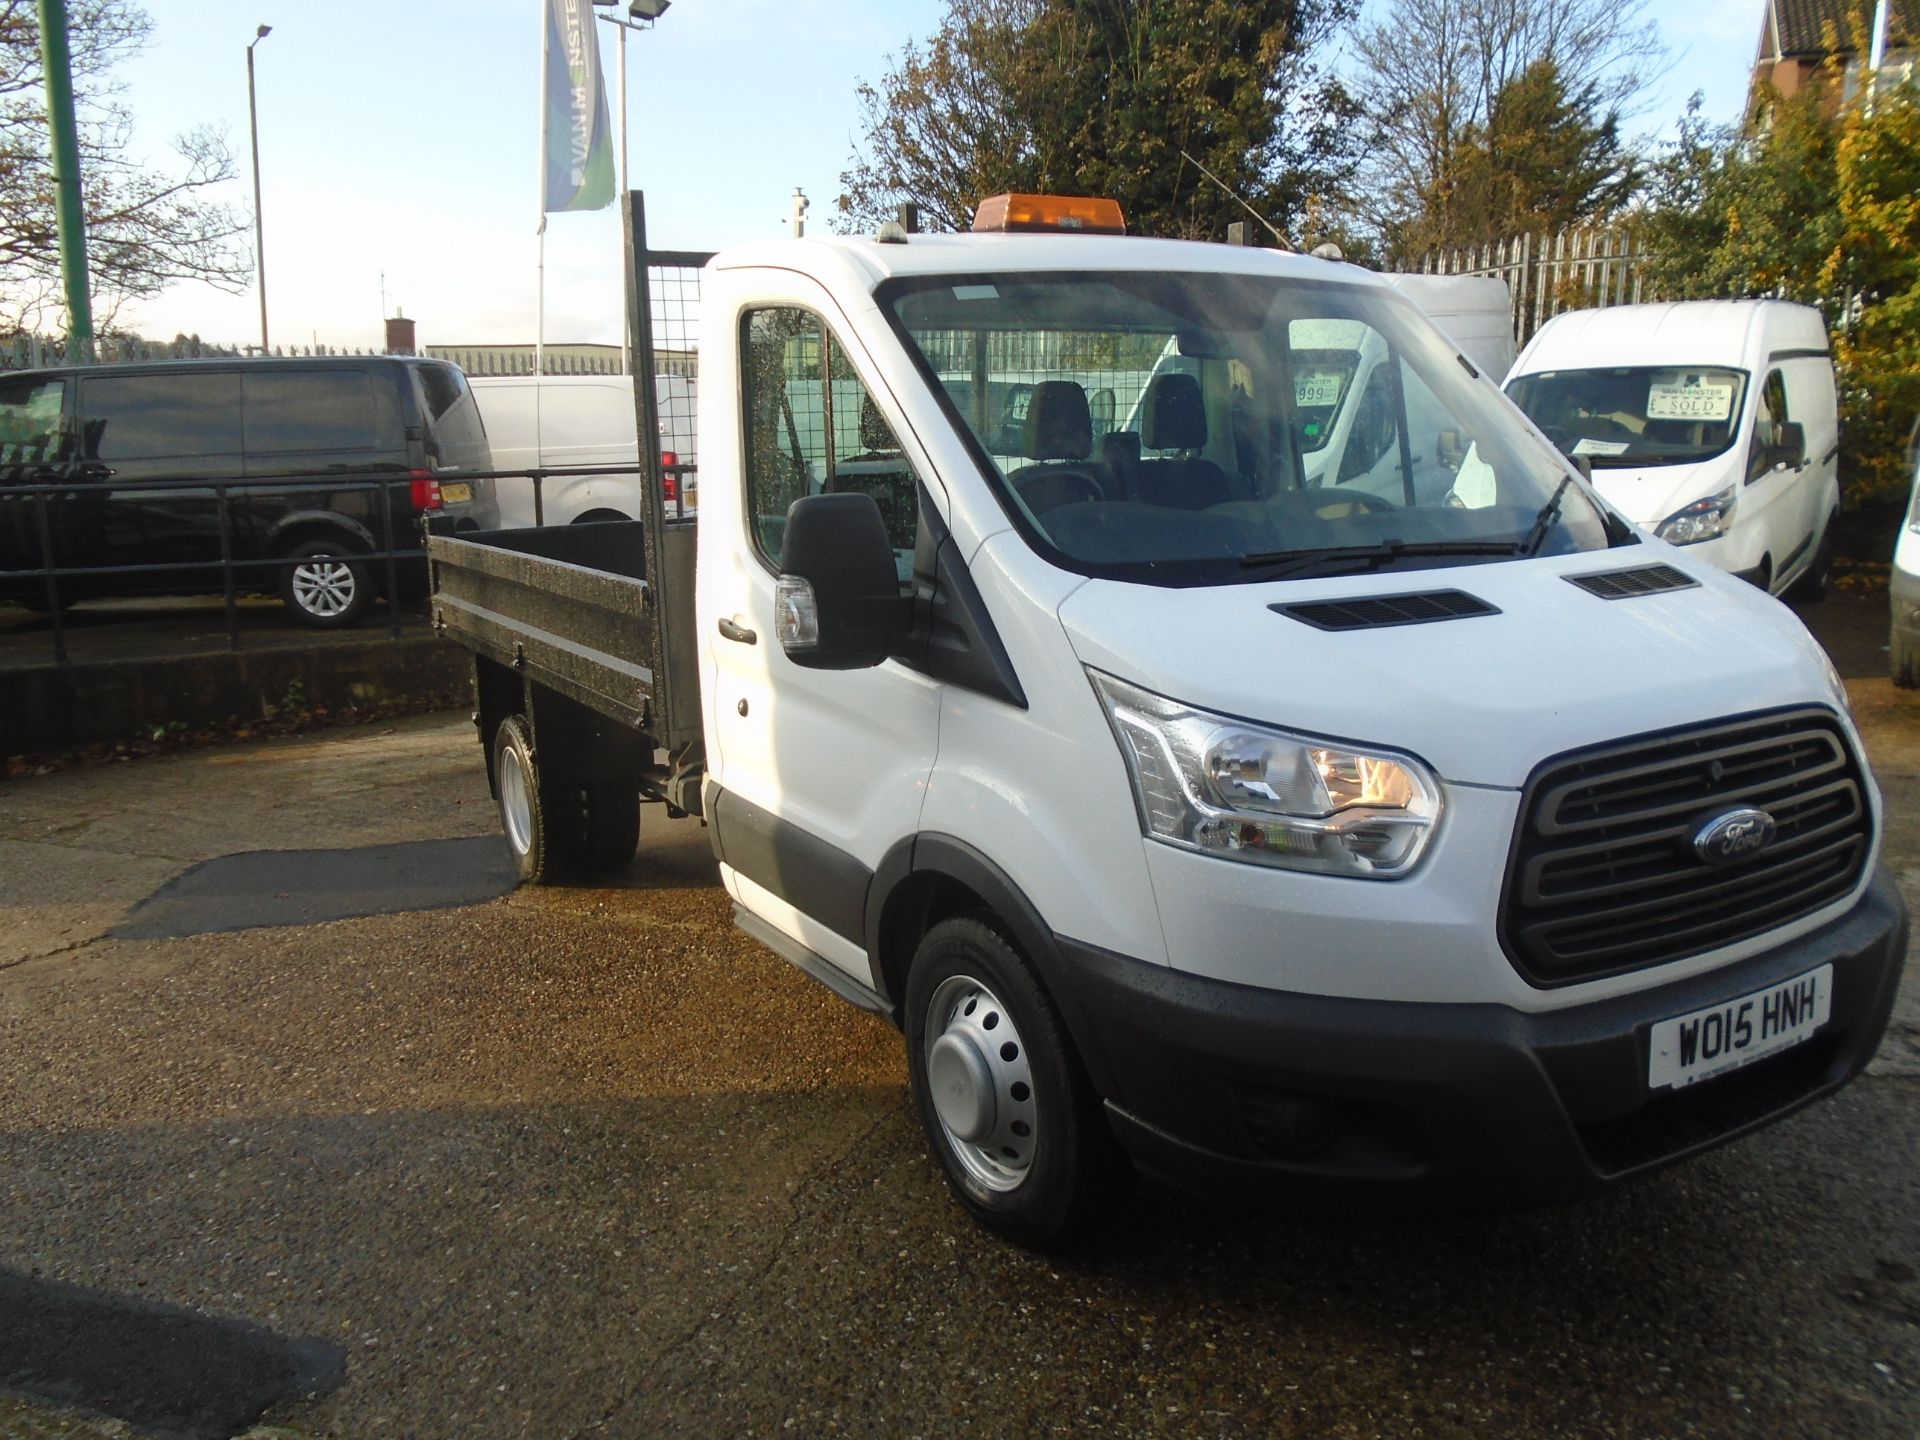 2015 Ford Transit 350 L2 SINGLE CAB TIPPER 125PS EURO 5 (WO15HNH)